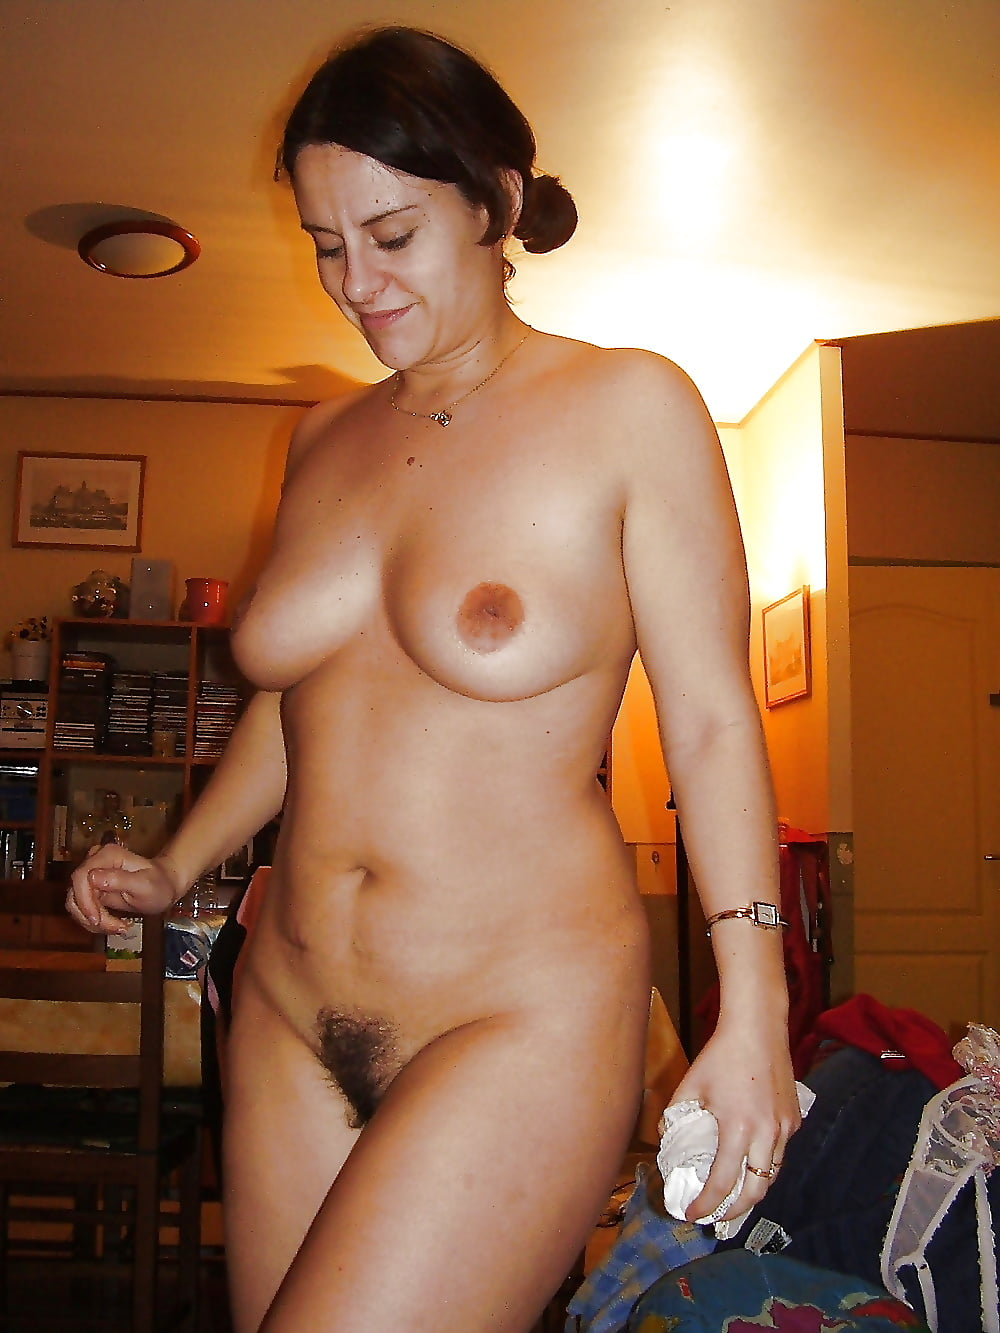 Nude photos of real women girls sex homo